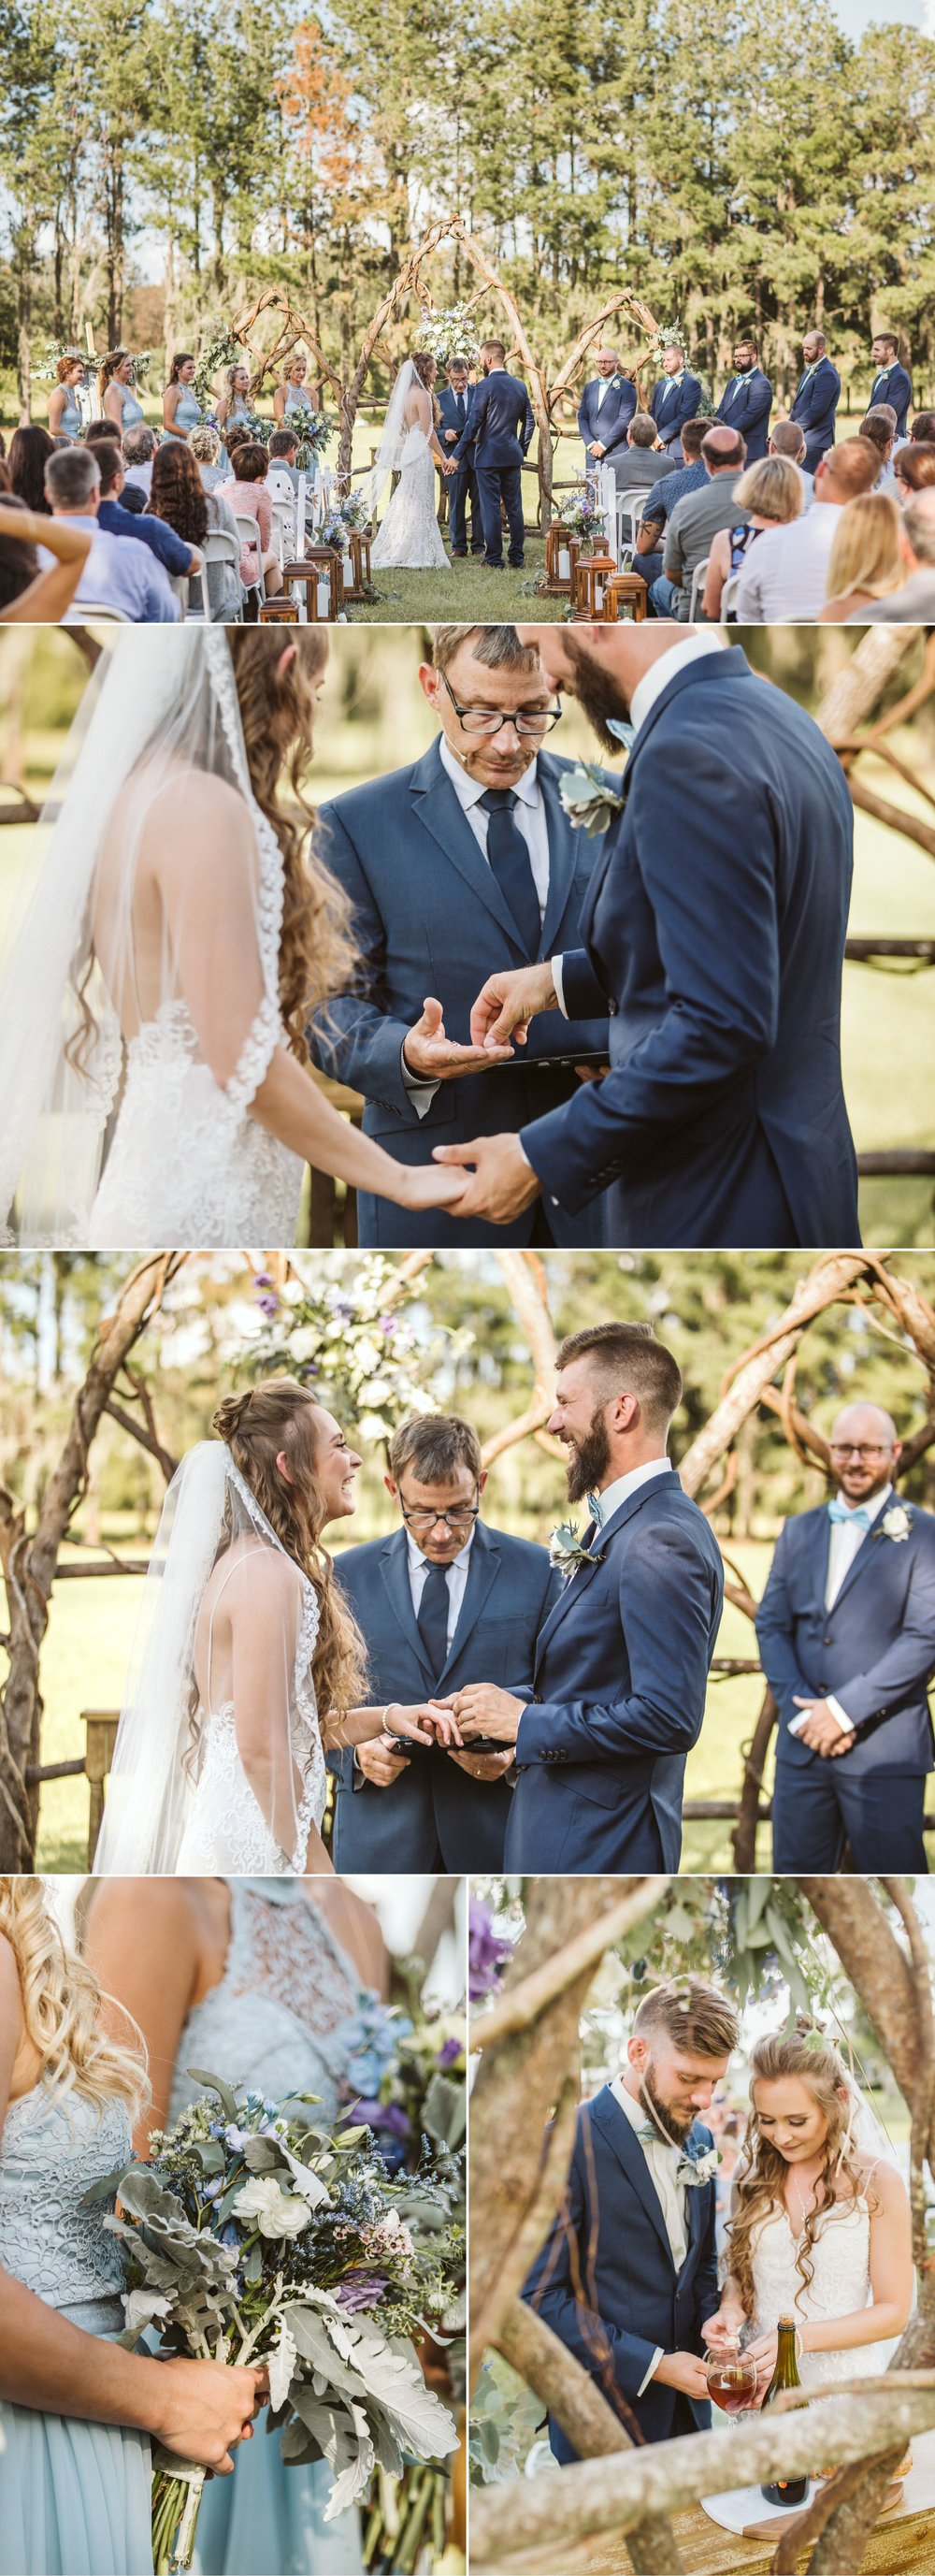 Romantic Floral Outdoor Field Chapel Wedding- Sarasota Florida- Courtney & Isaac17.jpg